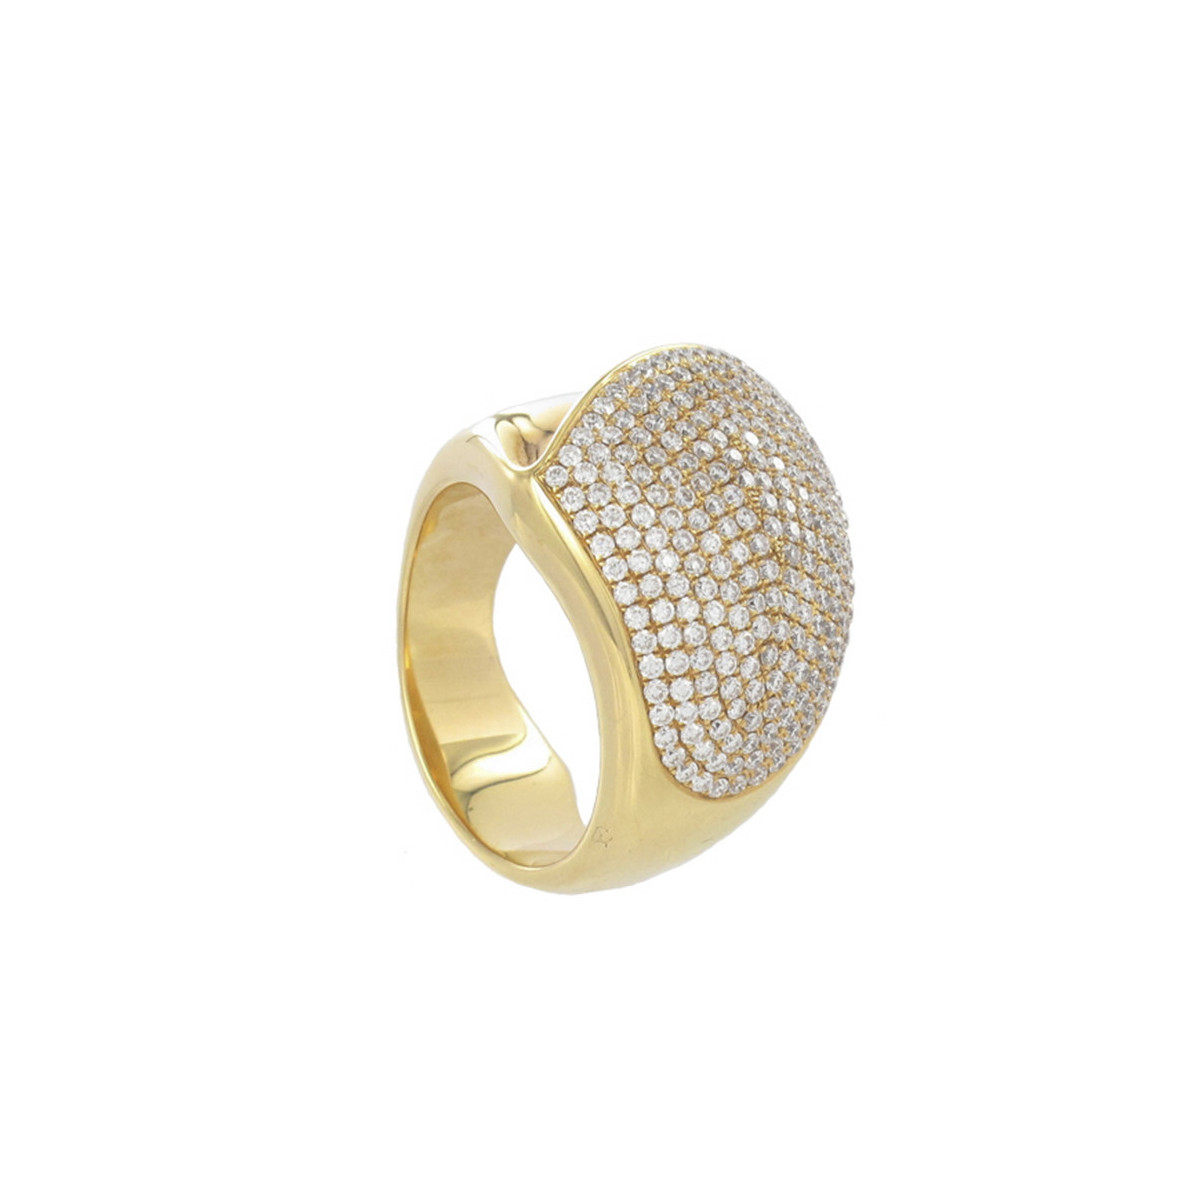 WIDE RING WITH DIAMONDS